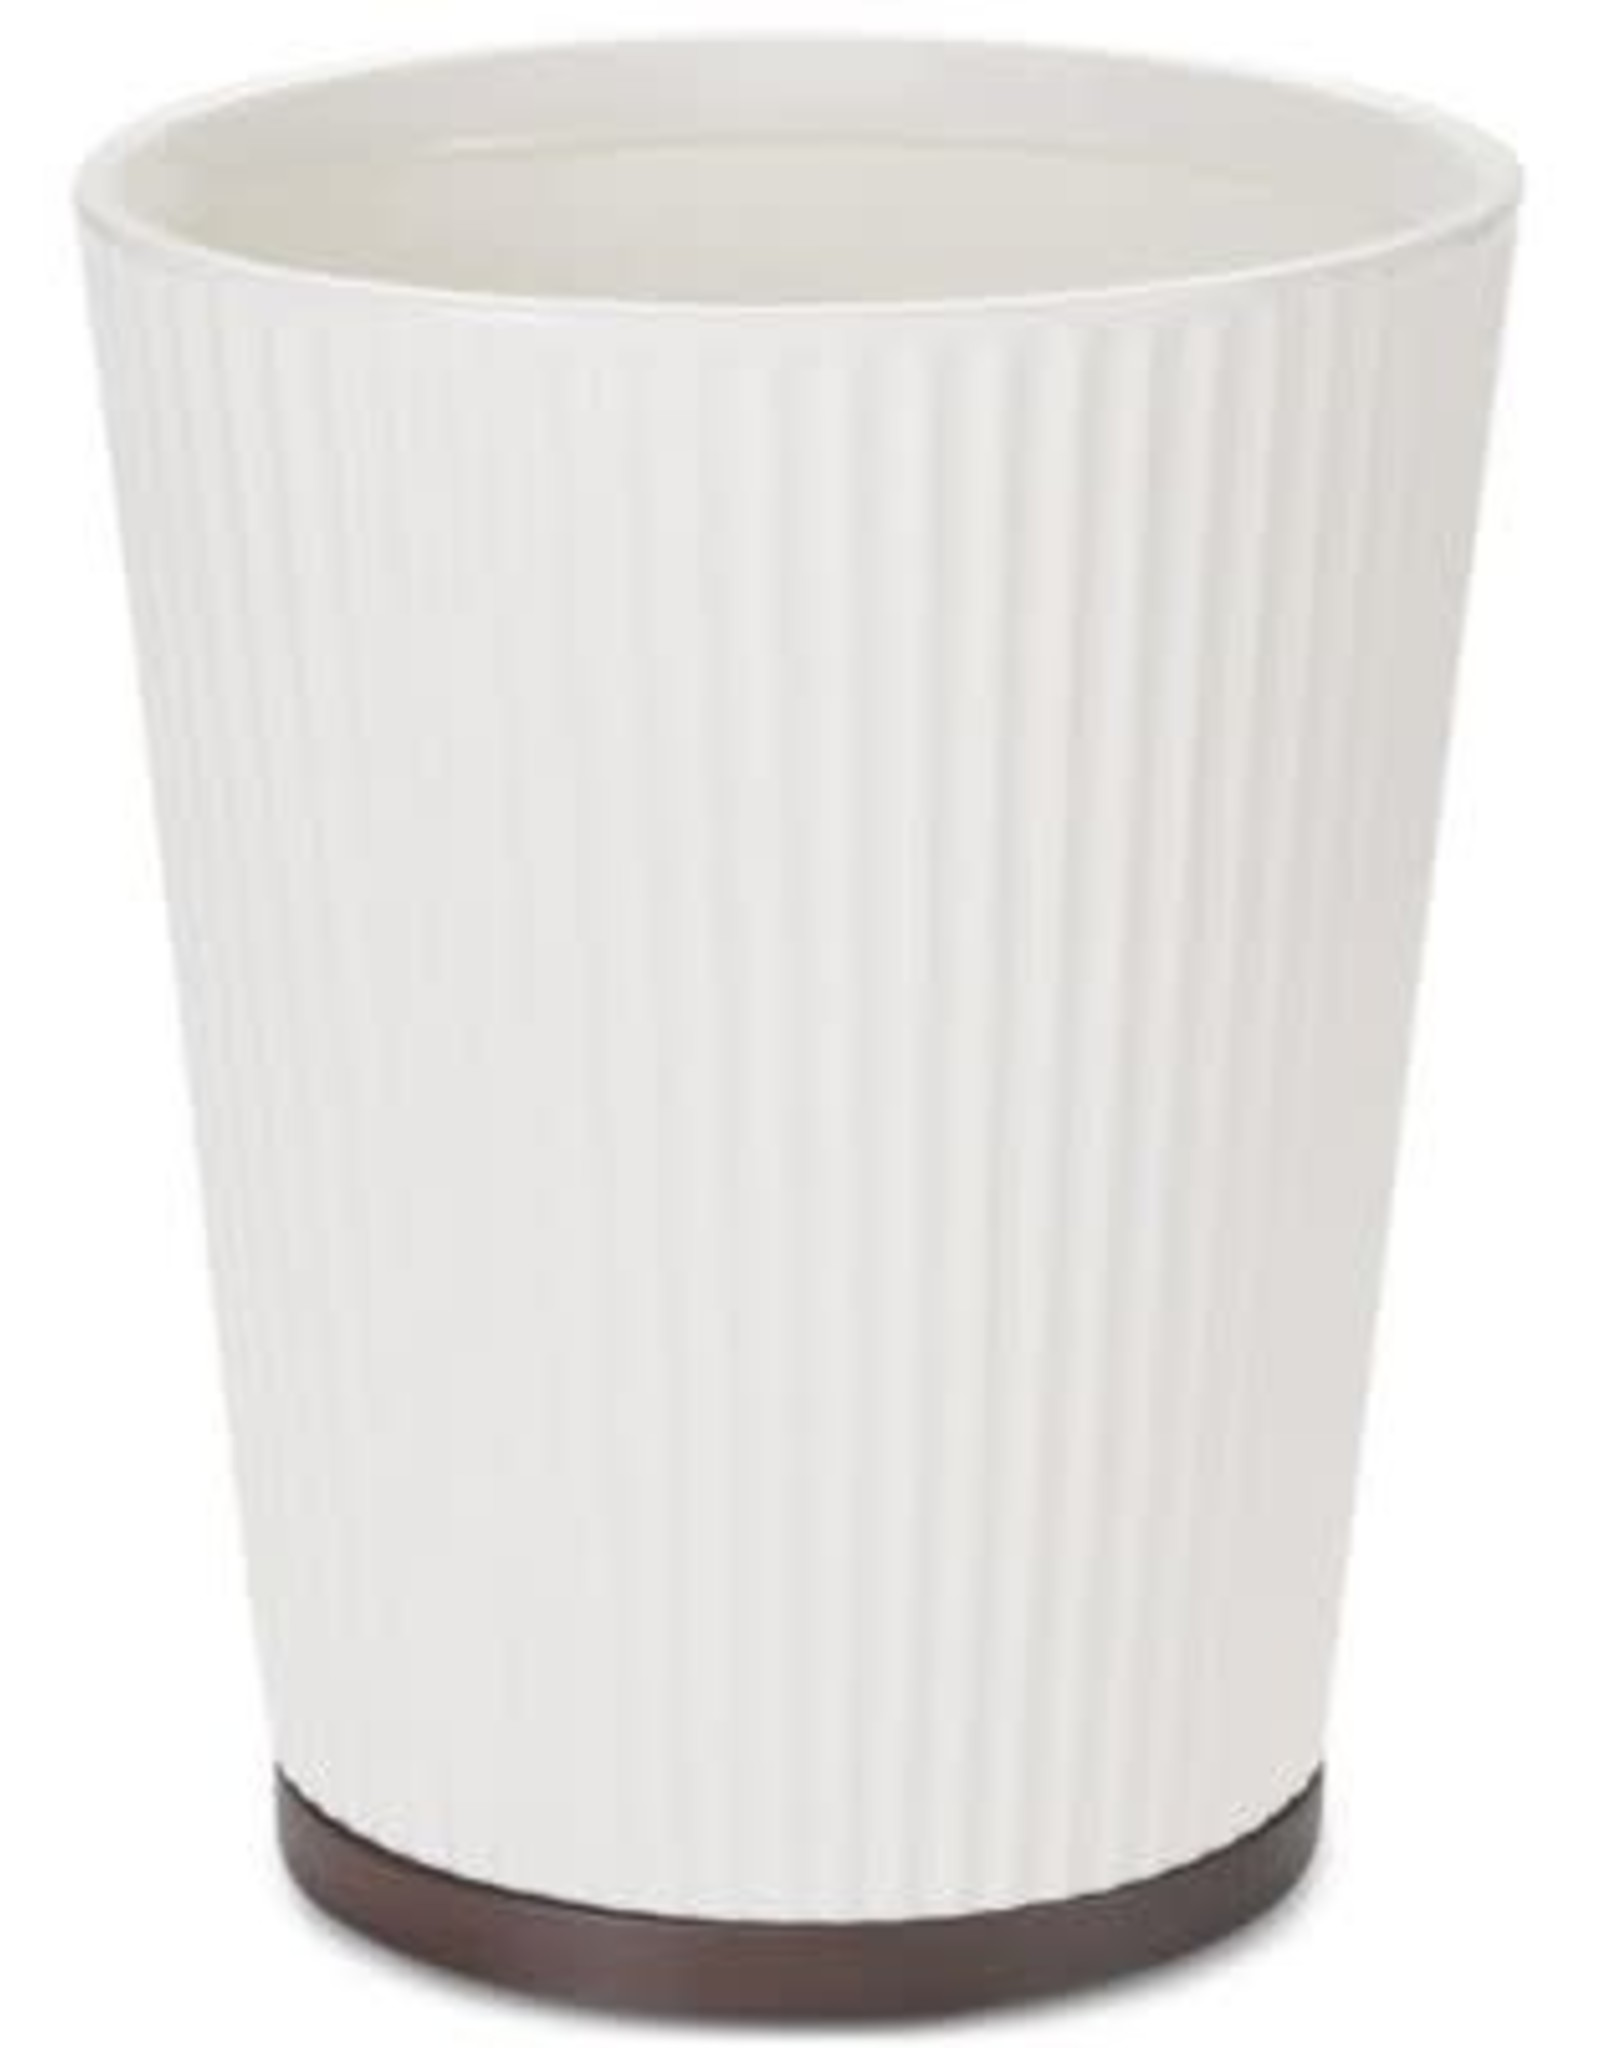 JLA Home ROSE WASTEBASKET BASIC